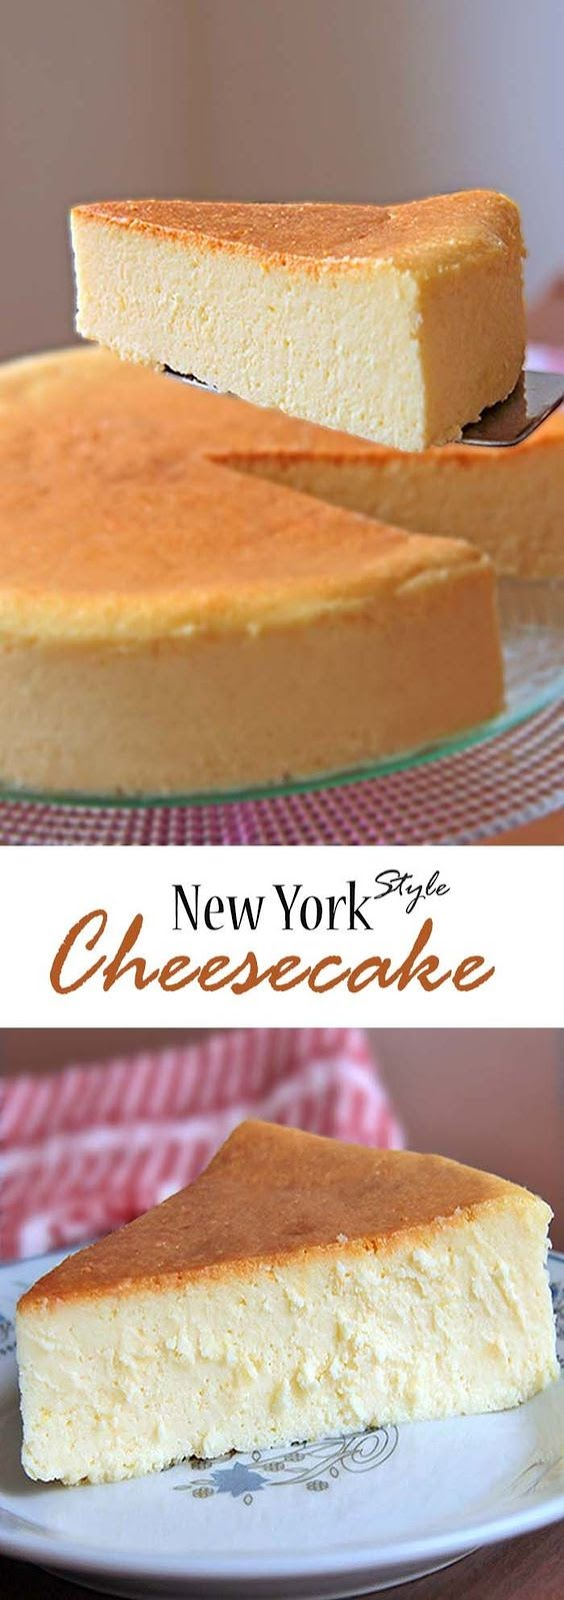 ★★★★☆ 7561 ratings | New York Style Cheesecake #HEALTHYFOOD #EASYRECIPES #DINNER #LAUCH #DELICIOUS #EASY #HOLIDAYS #RECIPE #New #York #Style #Cheesecake